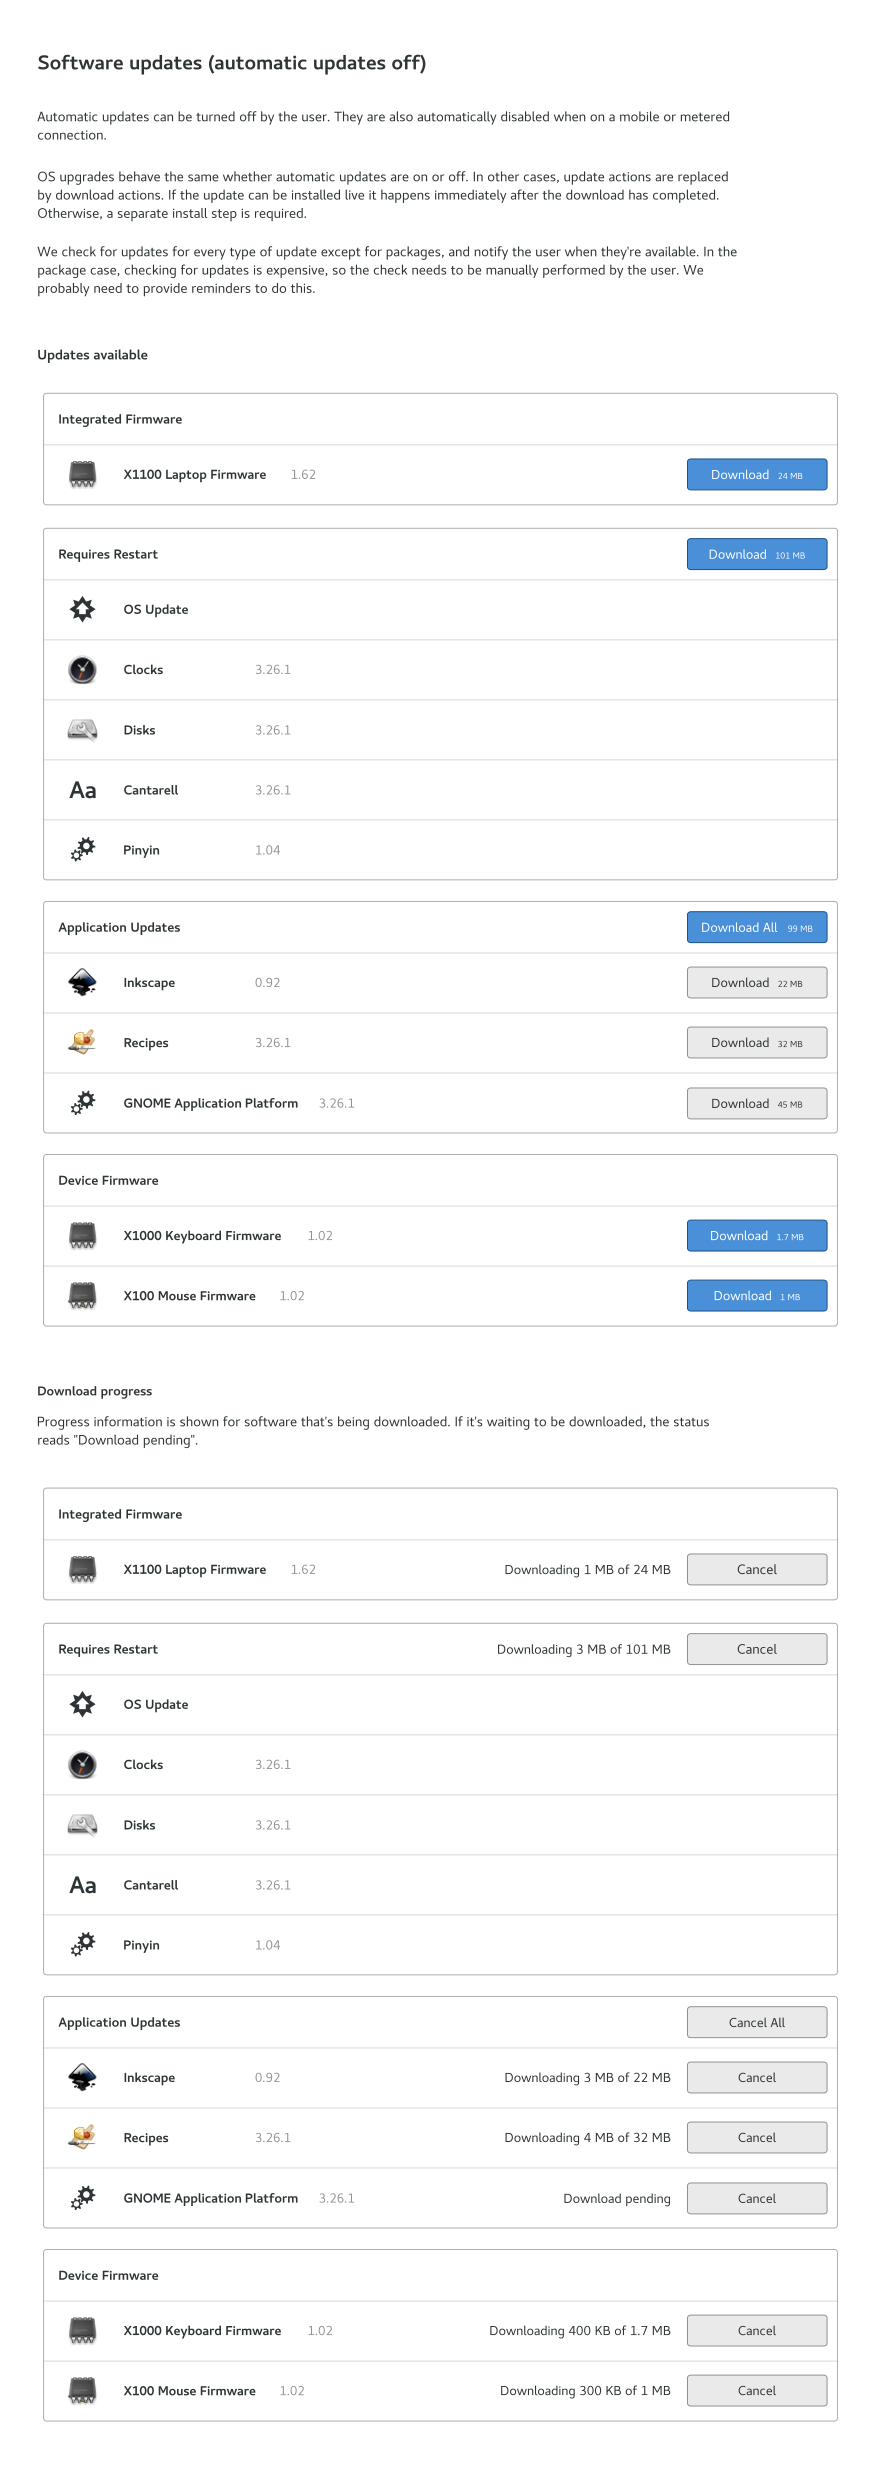 https://raw.githubusercontent.com/gnome-design-team/gnome-mockups-software/master/wireframes/updates-auto-off.png